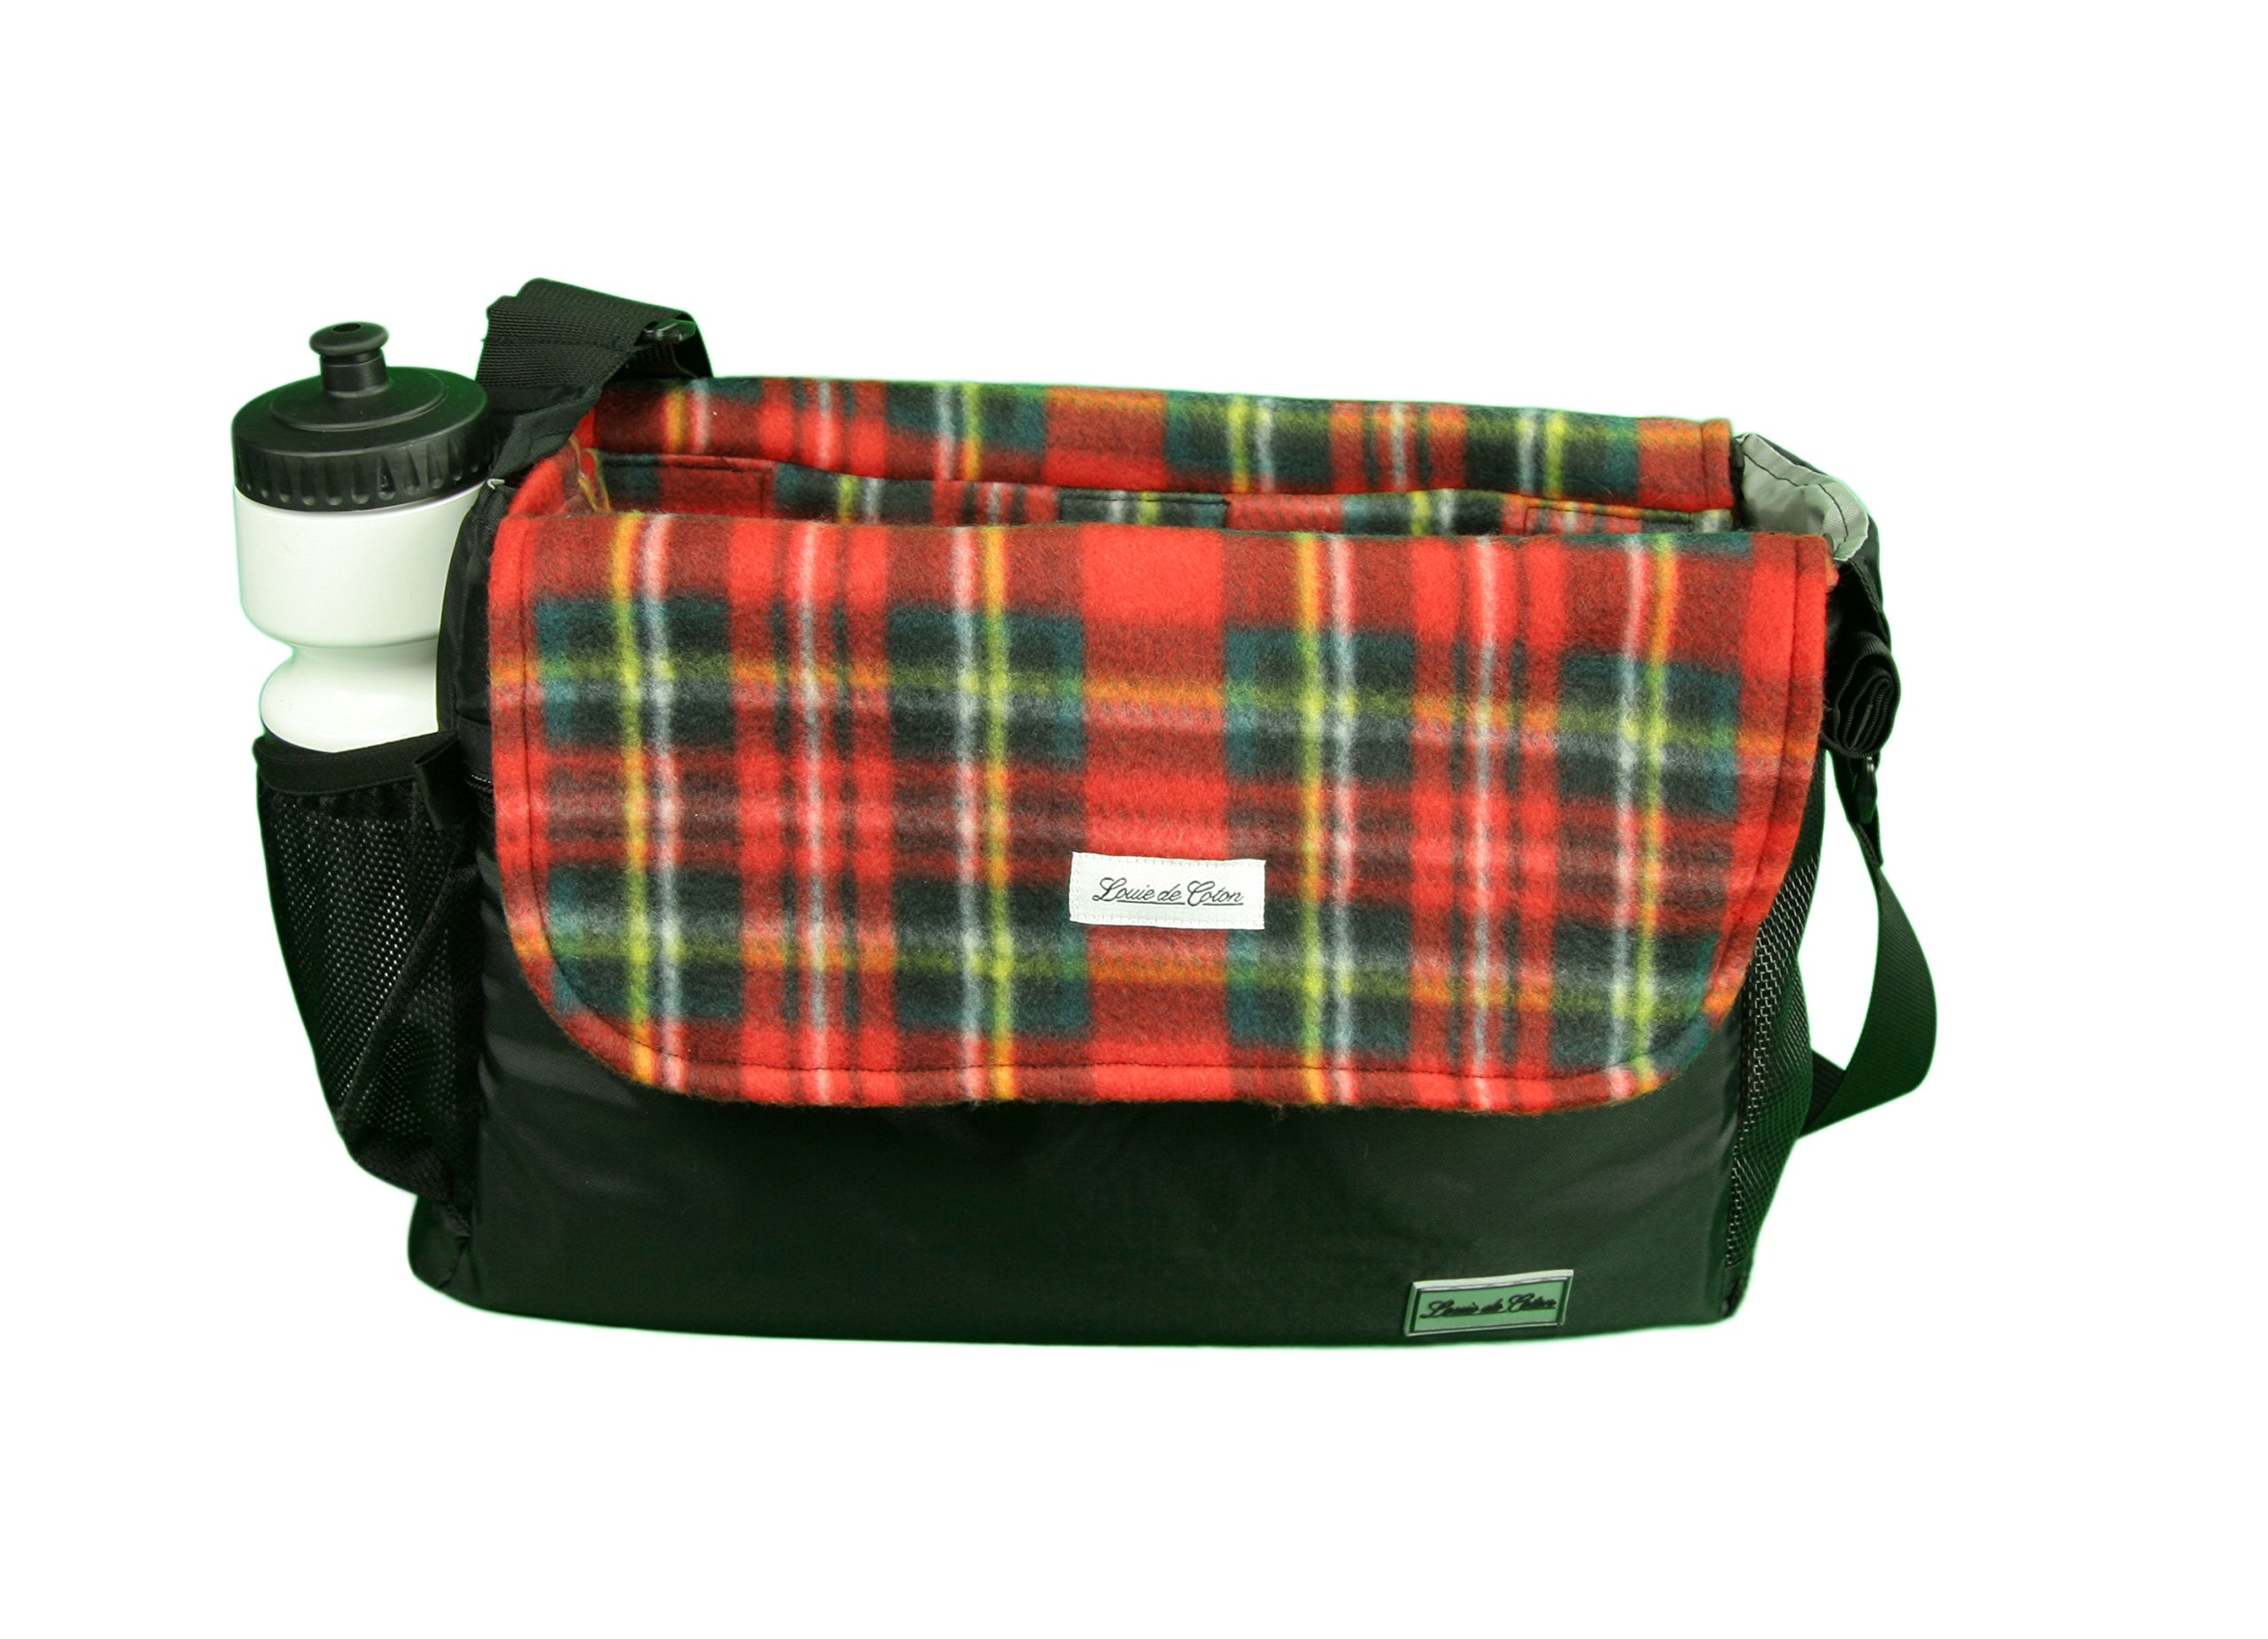 Louie de Coton Made in USA Small Dog Soft Sling Carrier Bag with Removable Fleece Blanket/Liner (Classic Plaid)